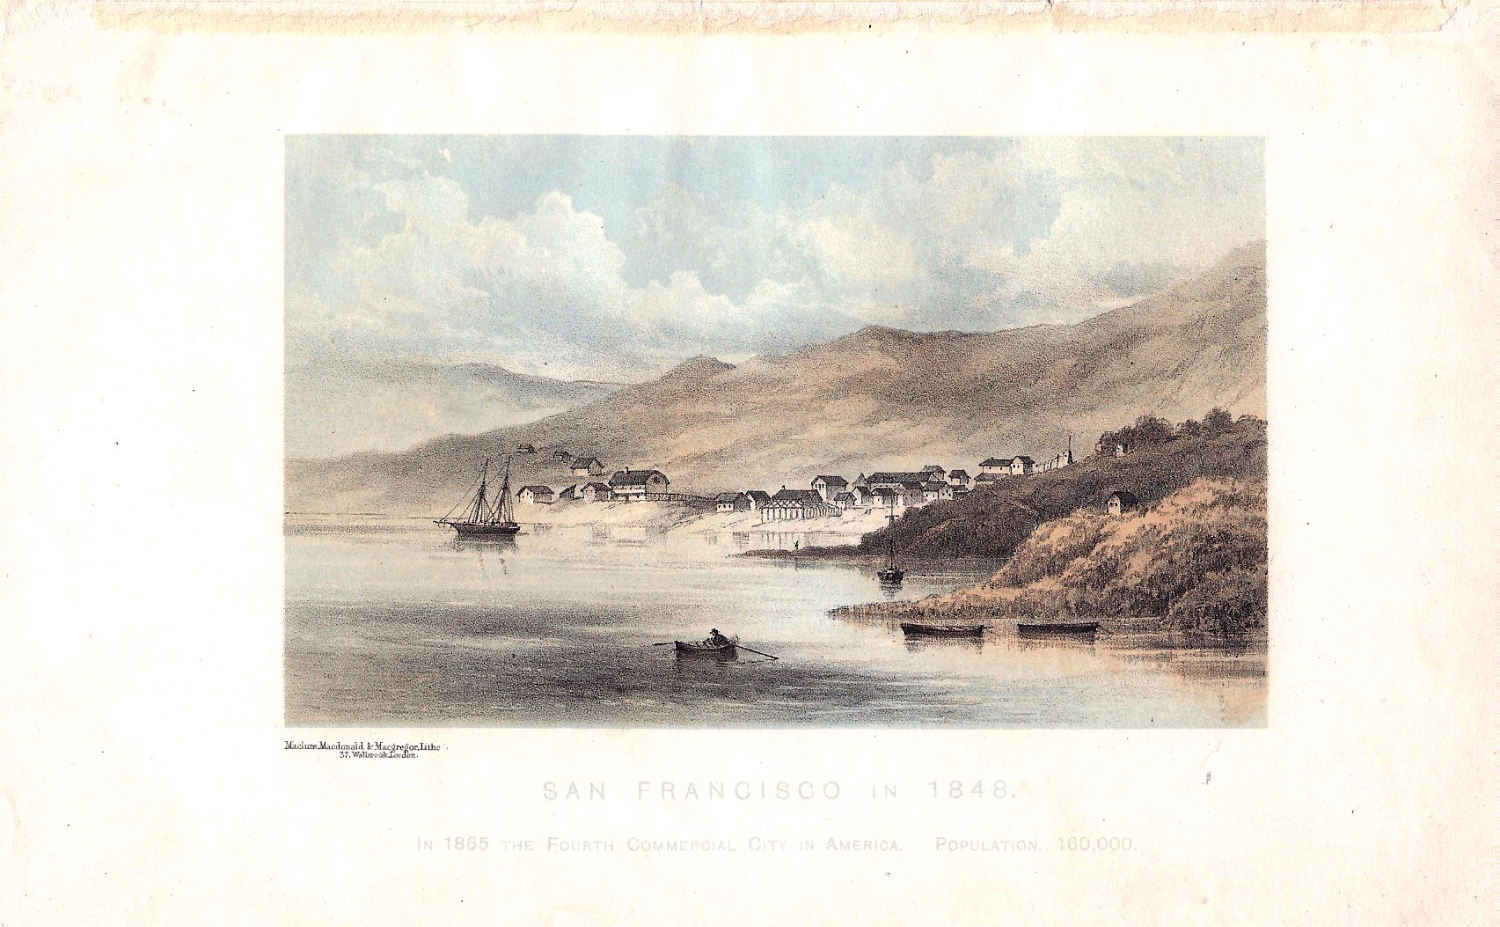 San Francisco in 1848